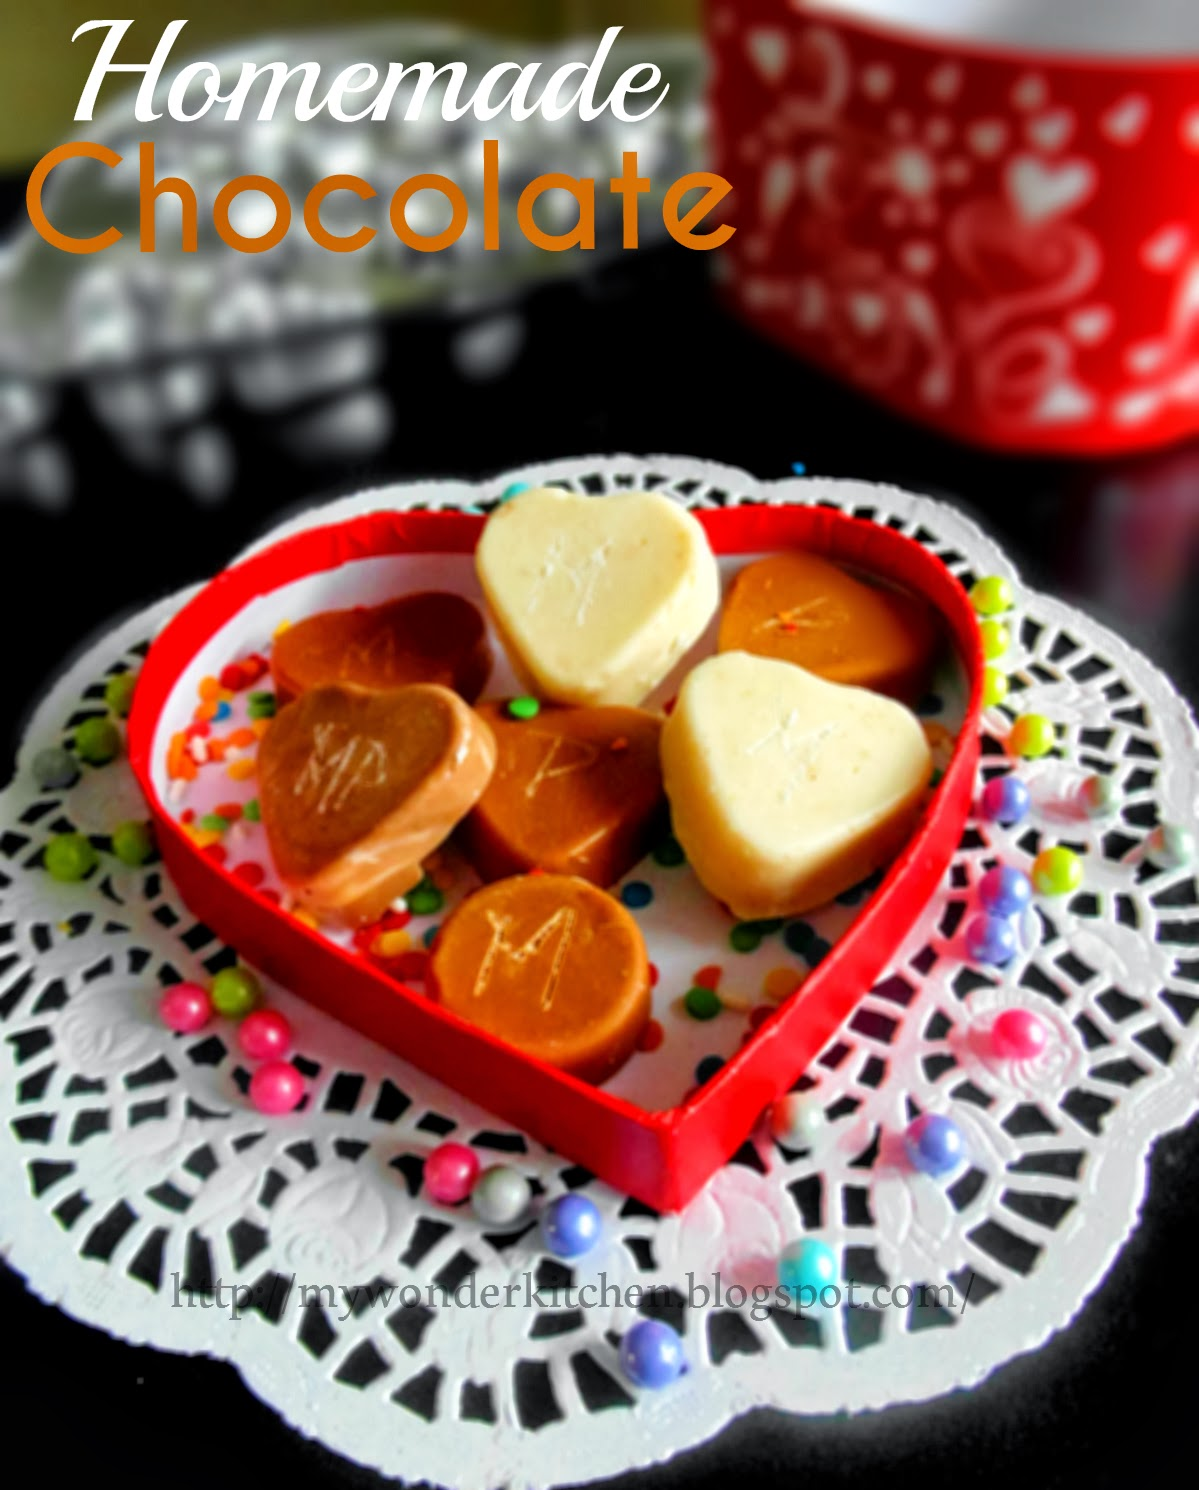 Homemade_chocolates